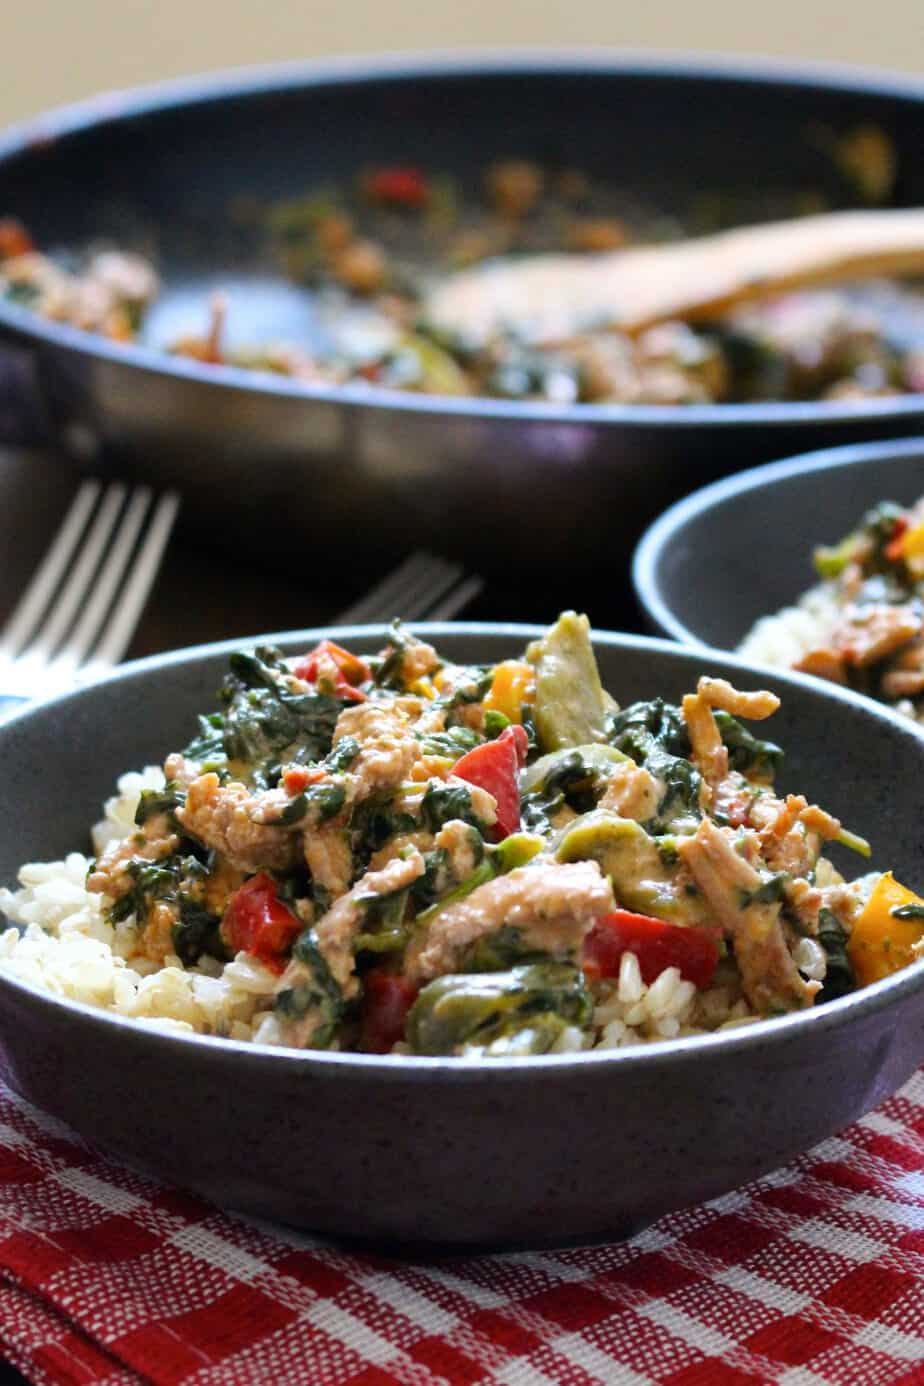 Easy One-Pan Coconut Ground Turkey with Peppers and Spinach by Frugal Nutrition